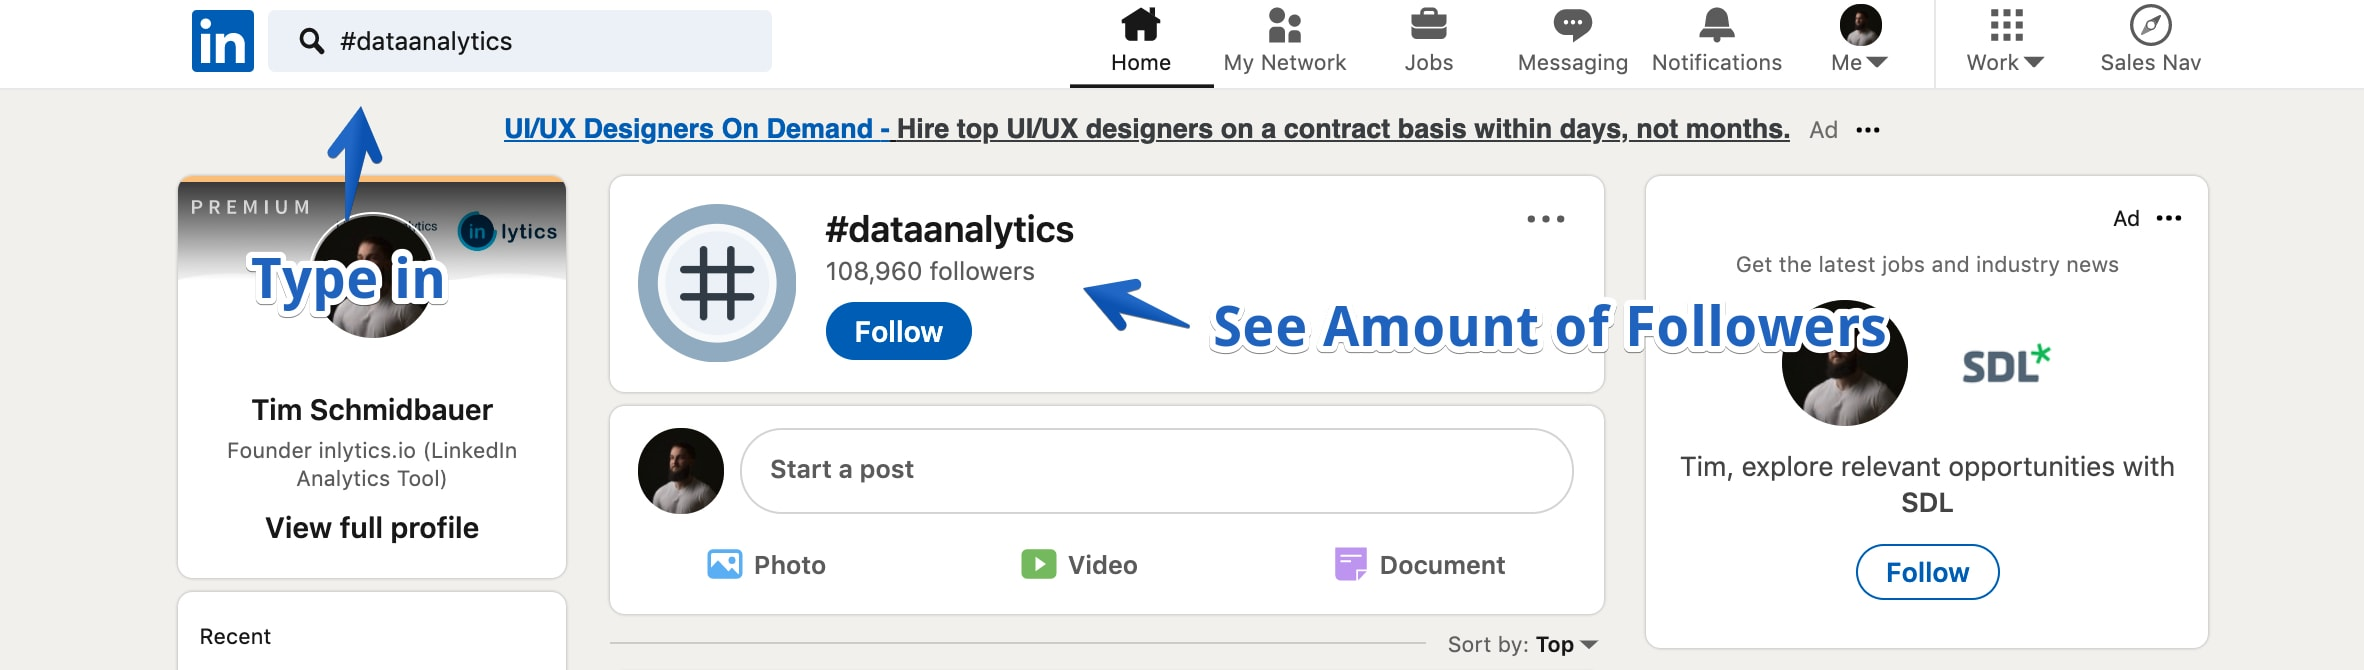 LinkedIn analytics search for hashtag to find out the amount of followers